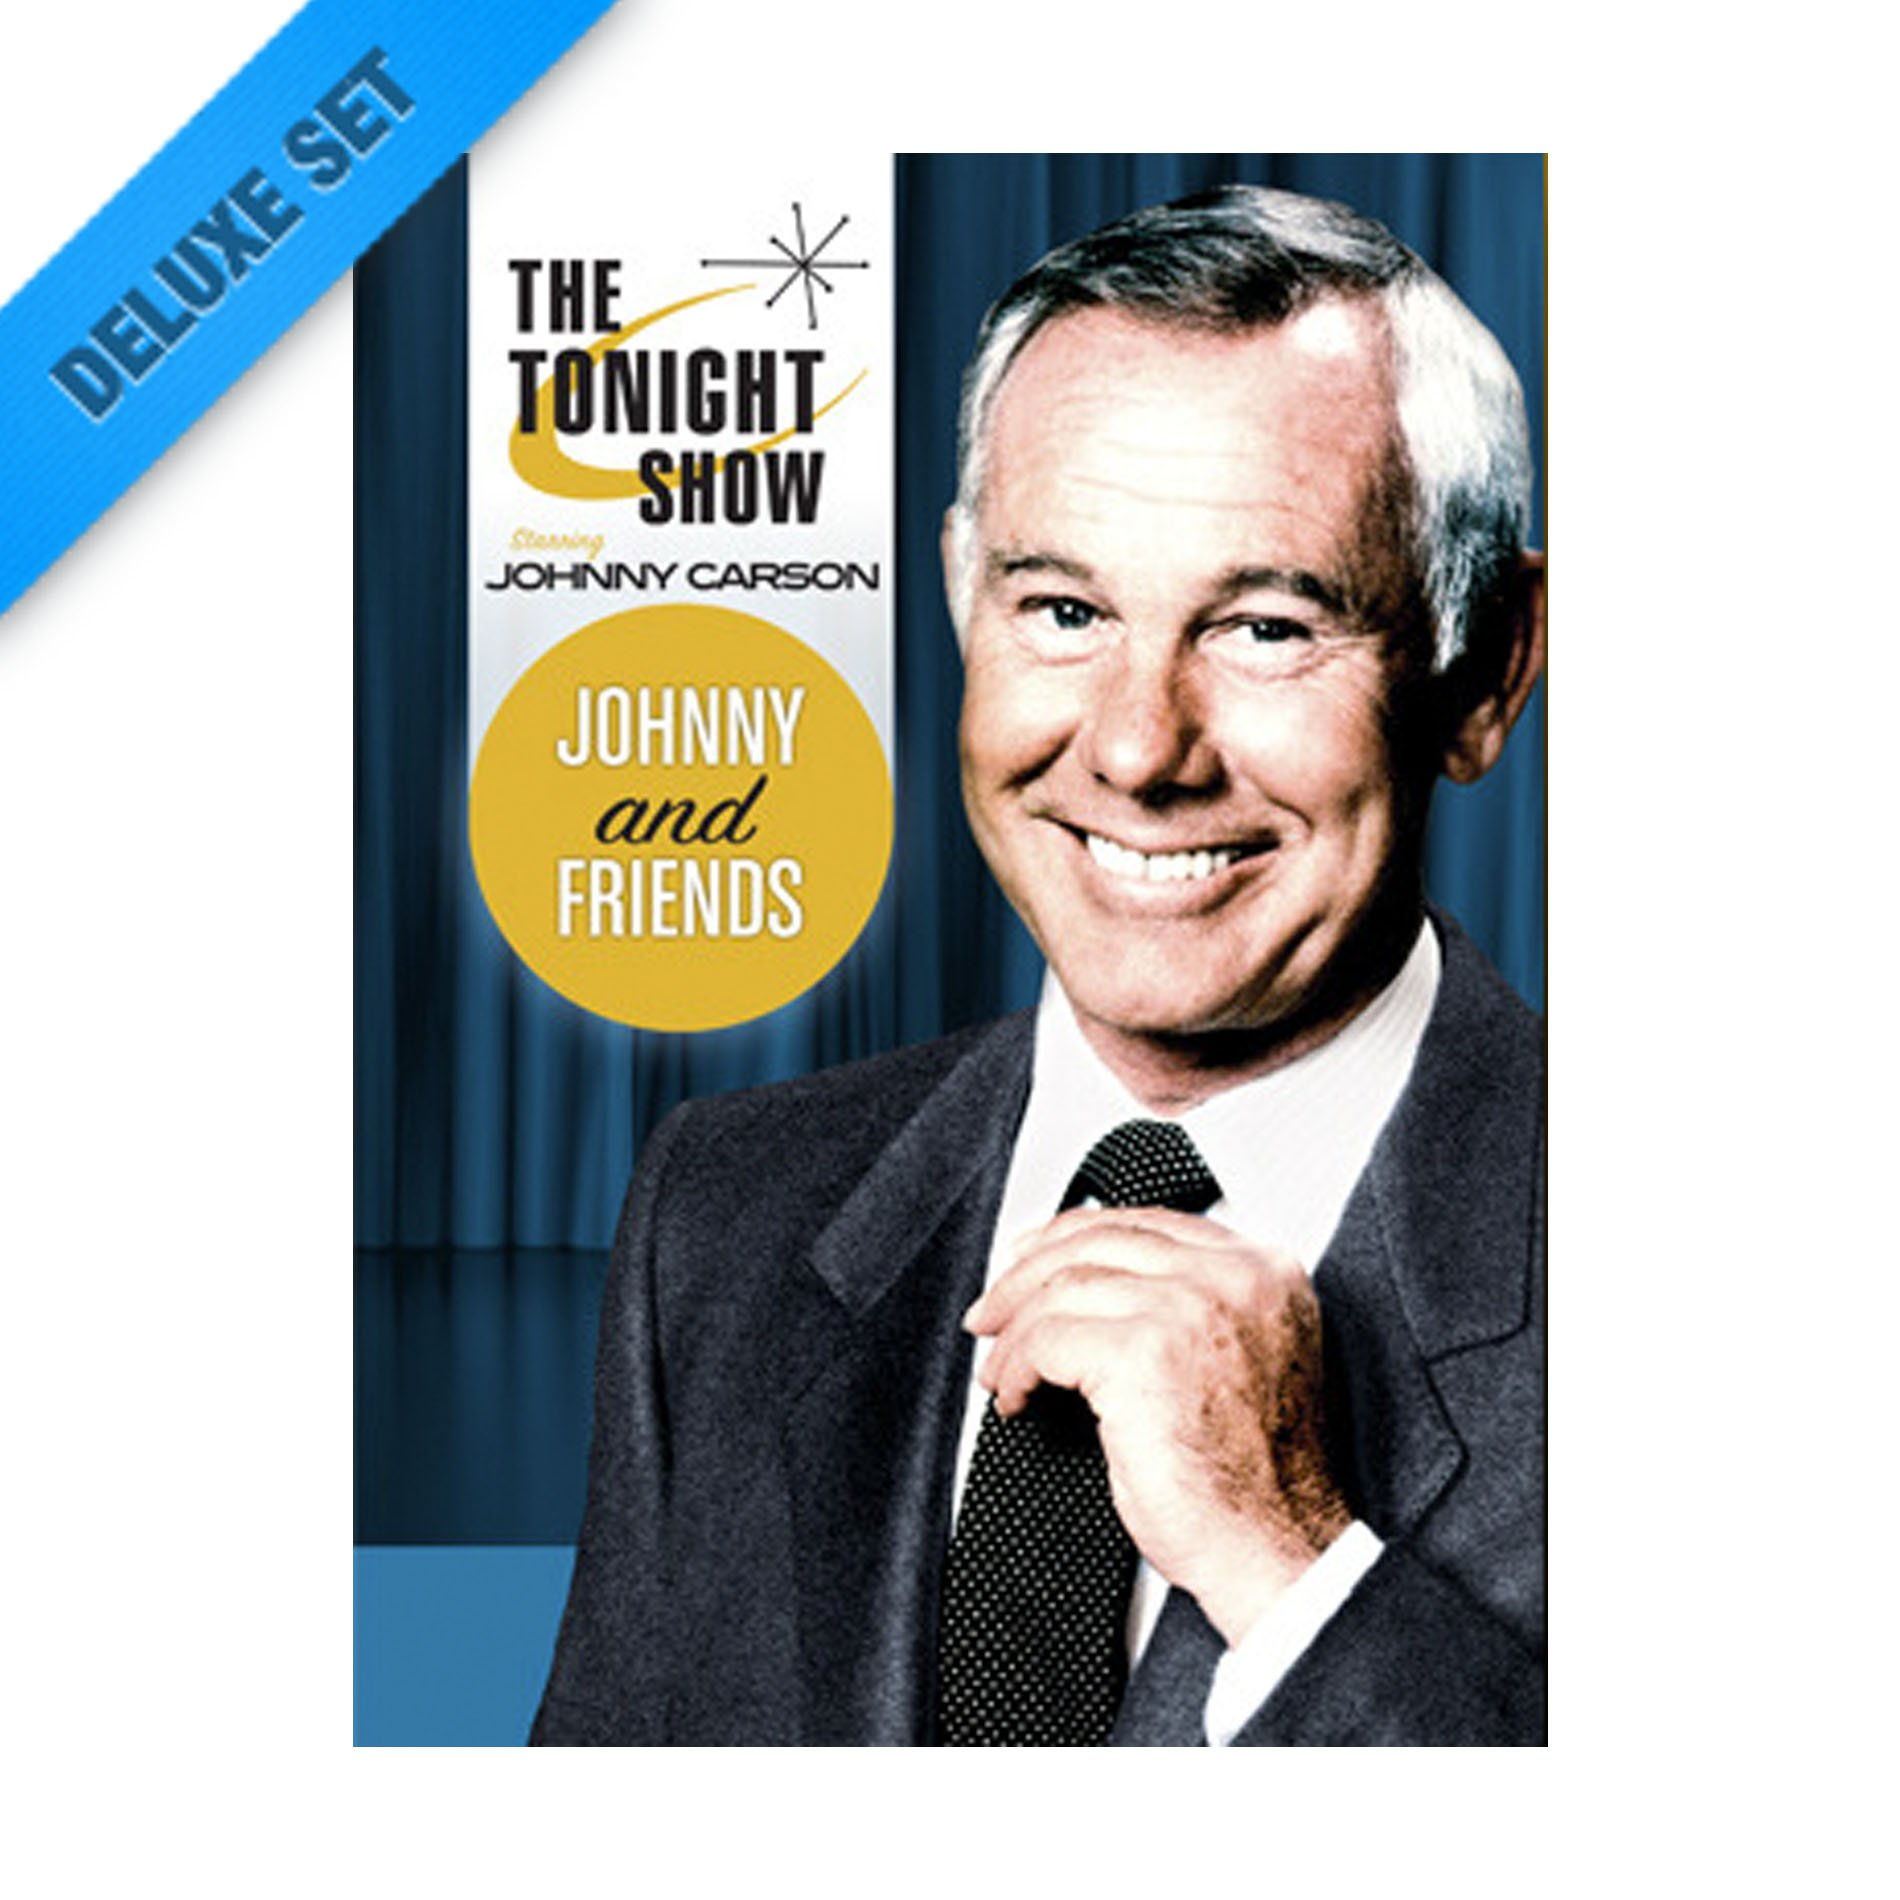 Johnny and Friends Deluxe Collection - Handpicked Tonight Show Episodes of the Johnny Carson Show by Time Life by Time Life